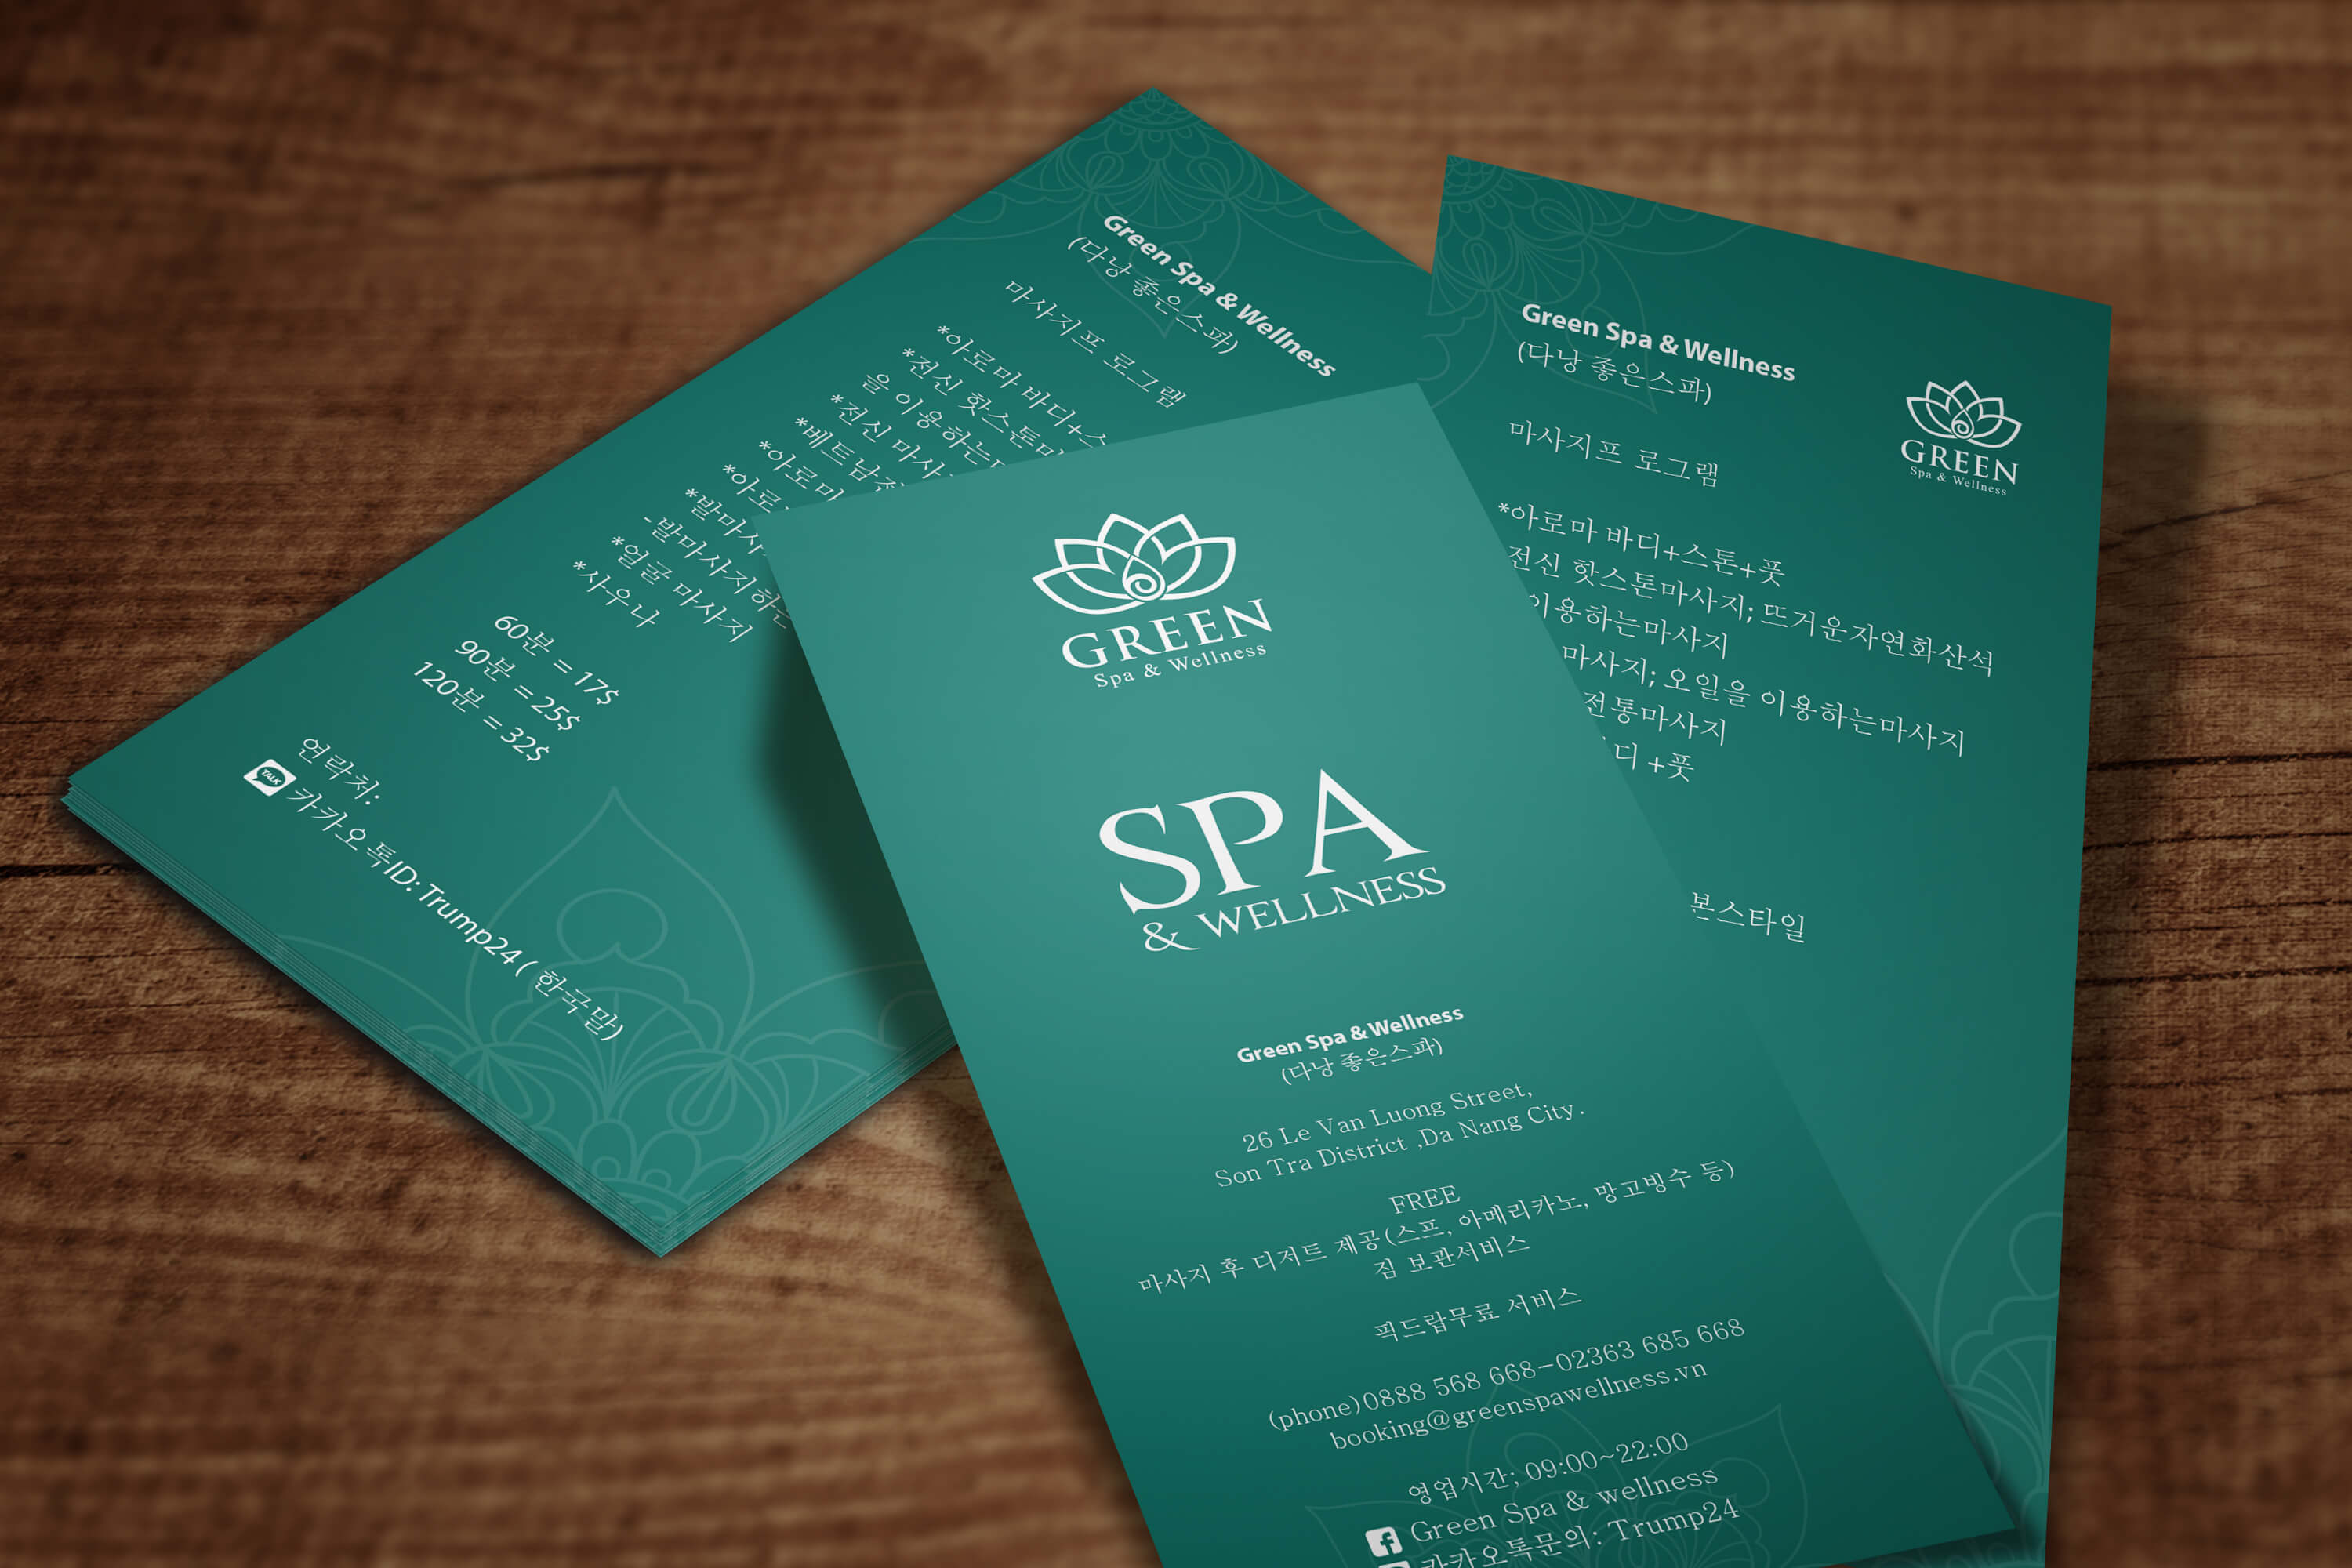 6 - Green Spa & Wellness